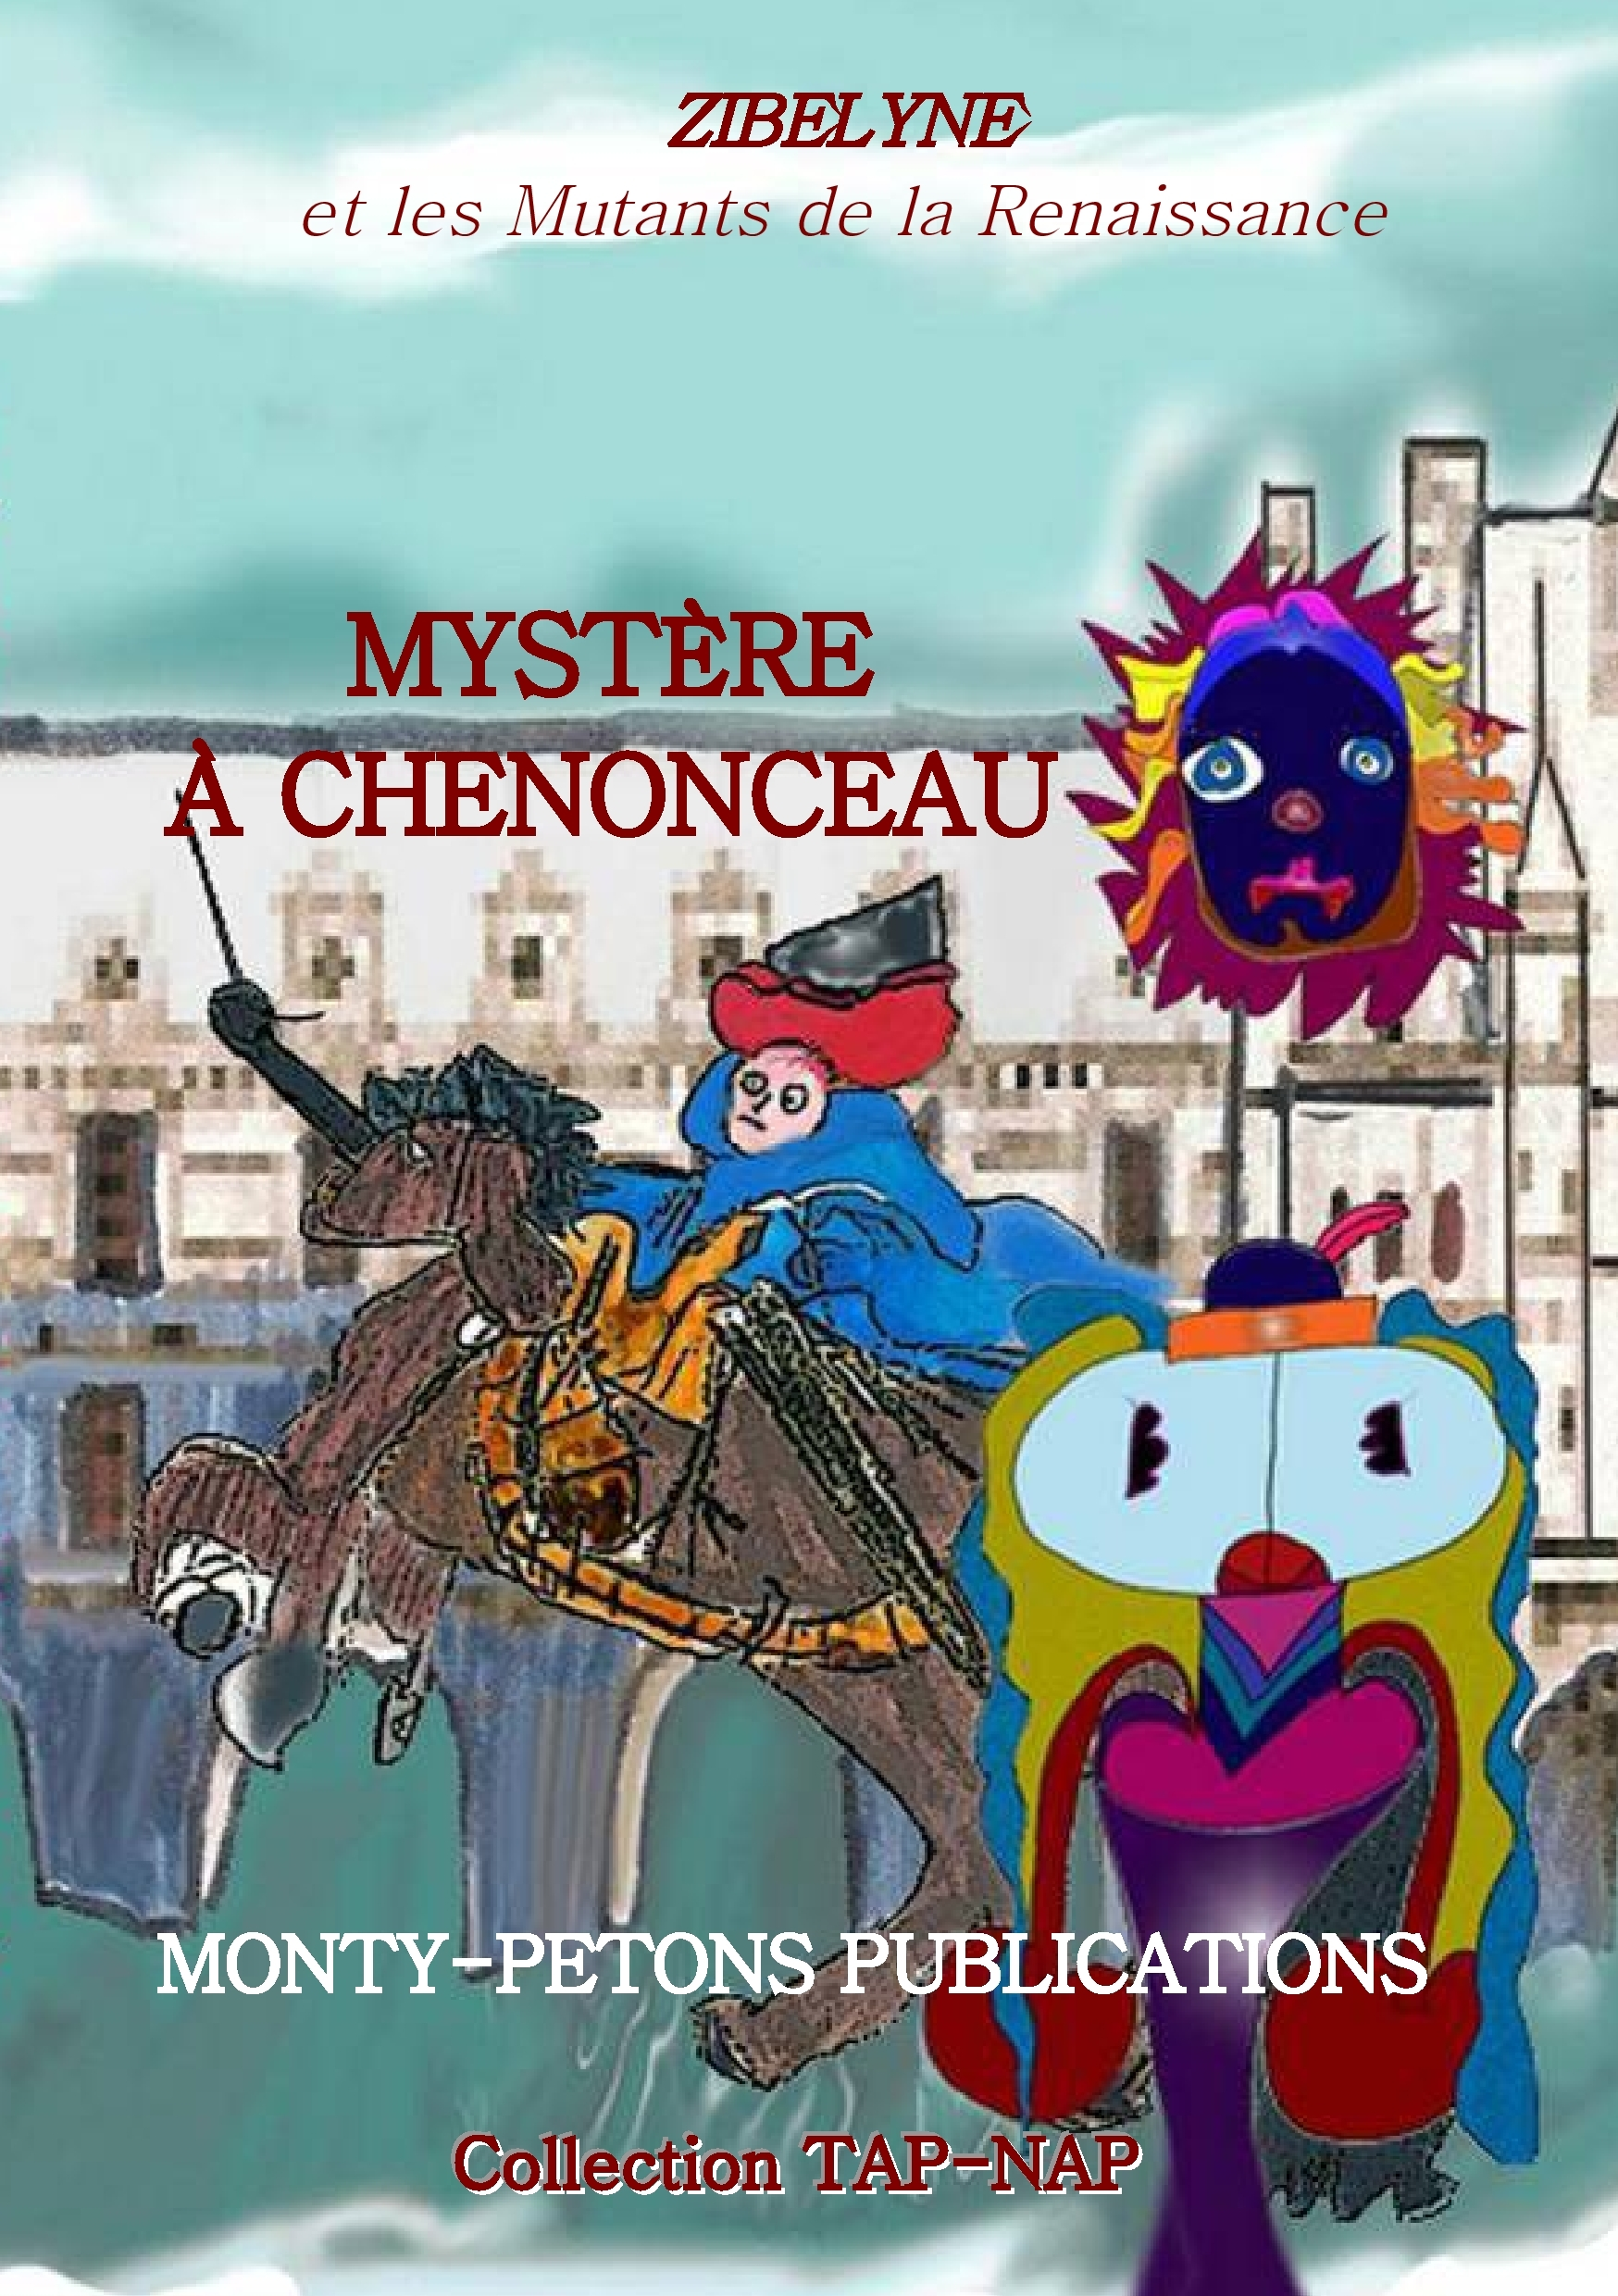 MYSTERE A CHENONCEAU